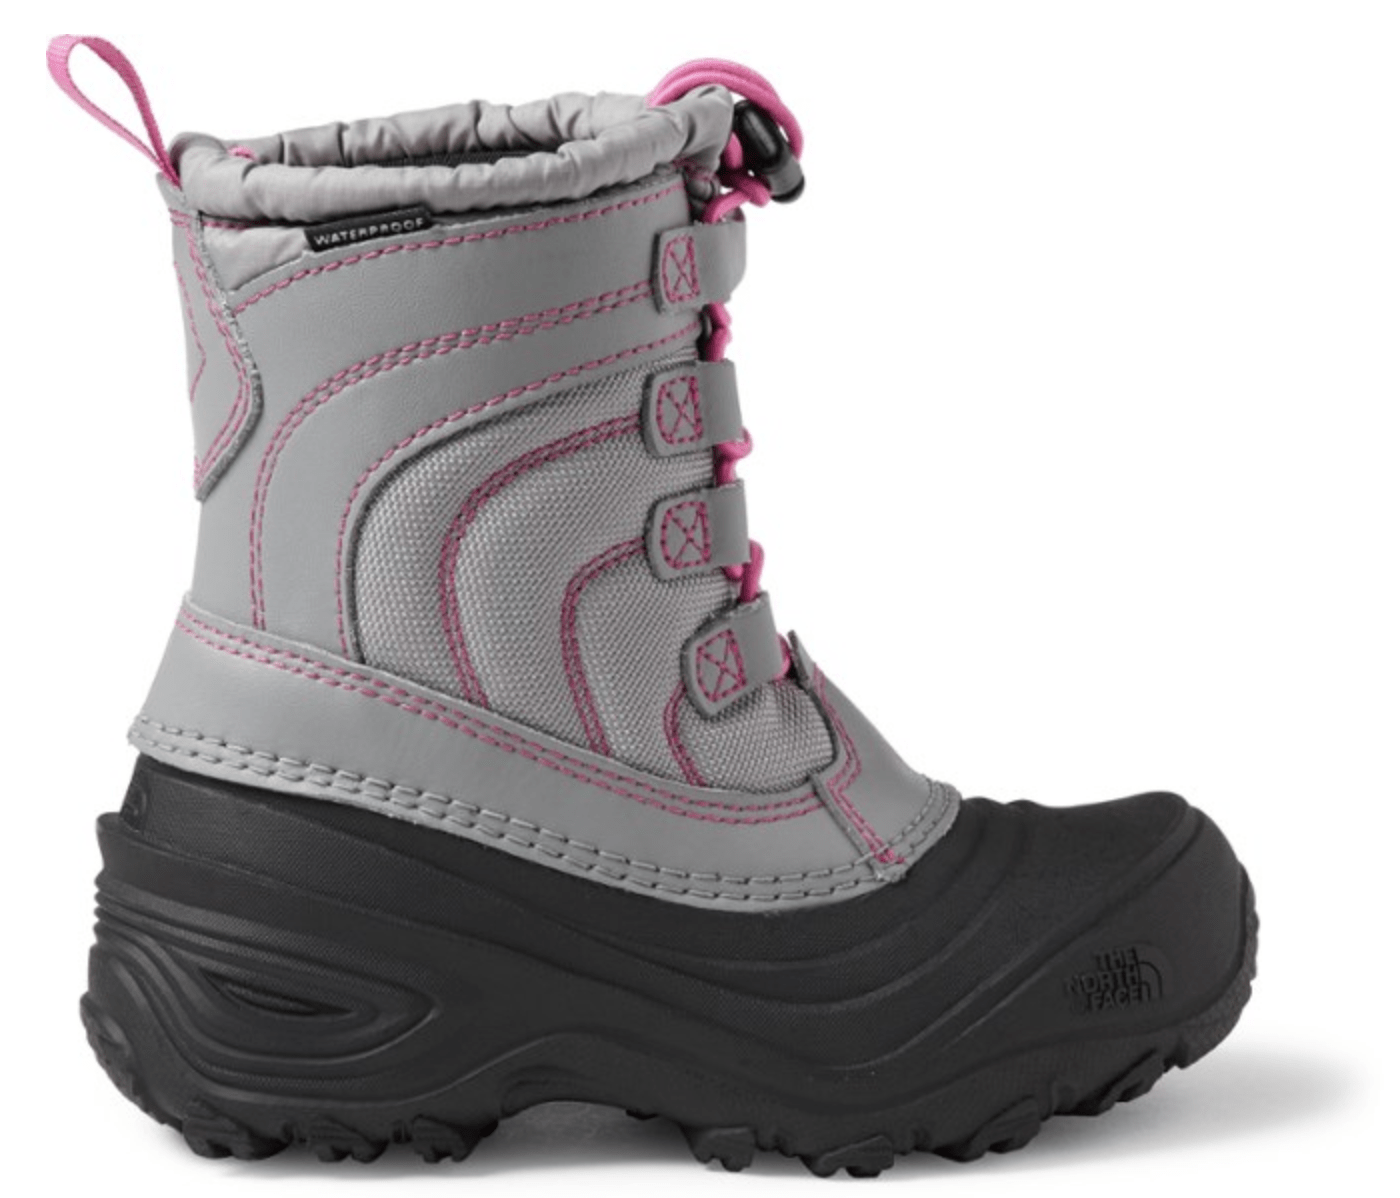 North Face Kids Winter Boots